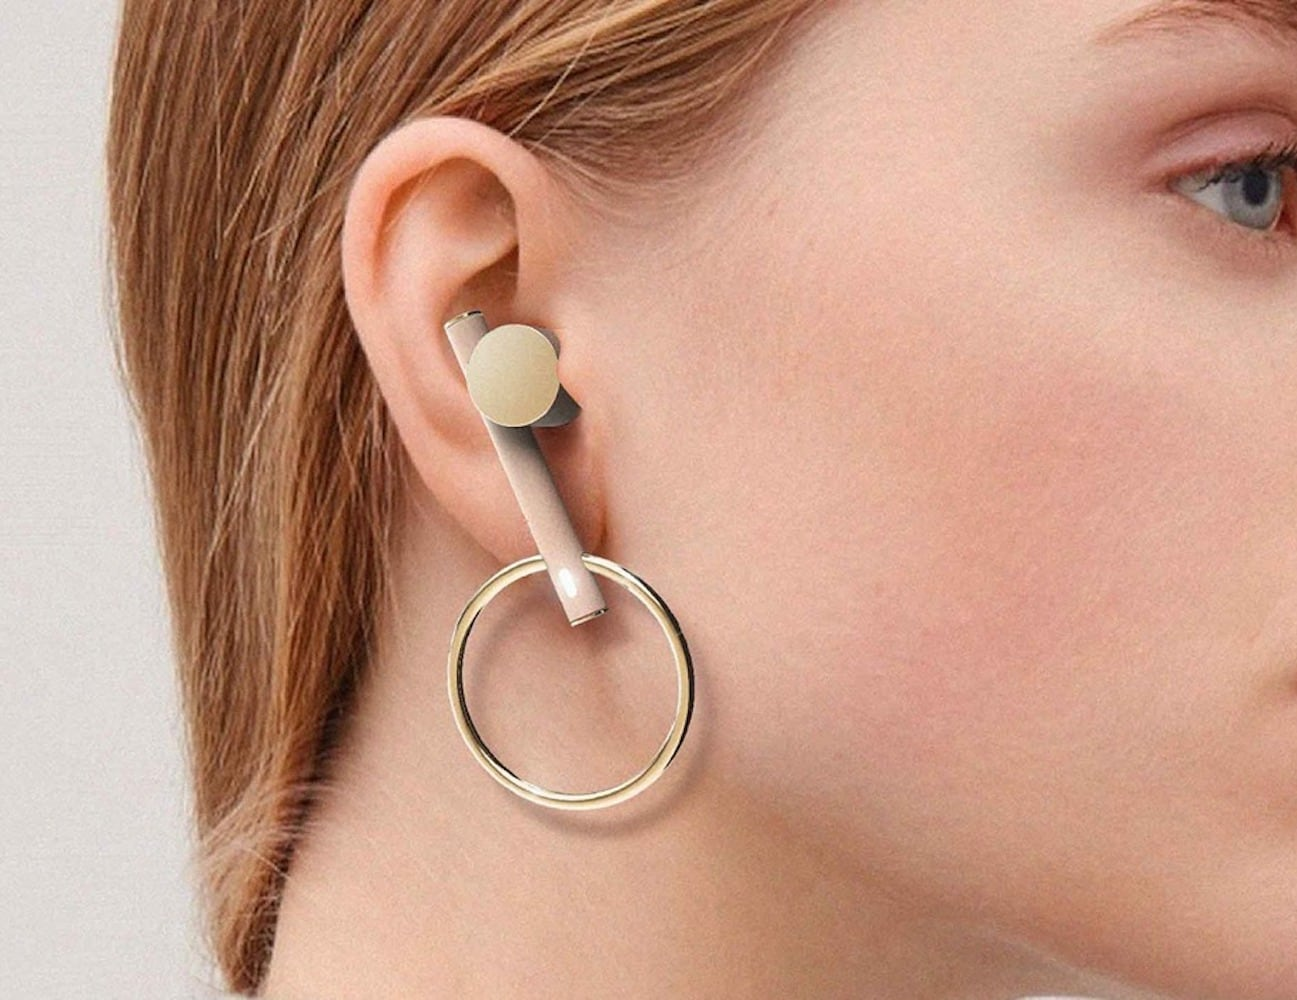 YoonJy Combination Earbud Earrings bring sound and style together